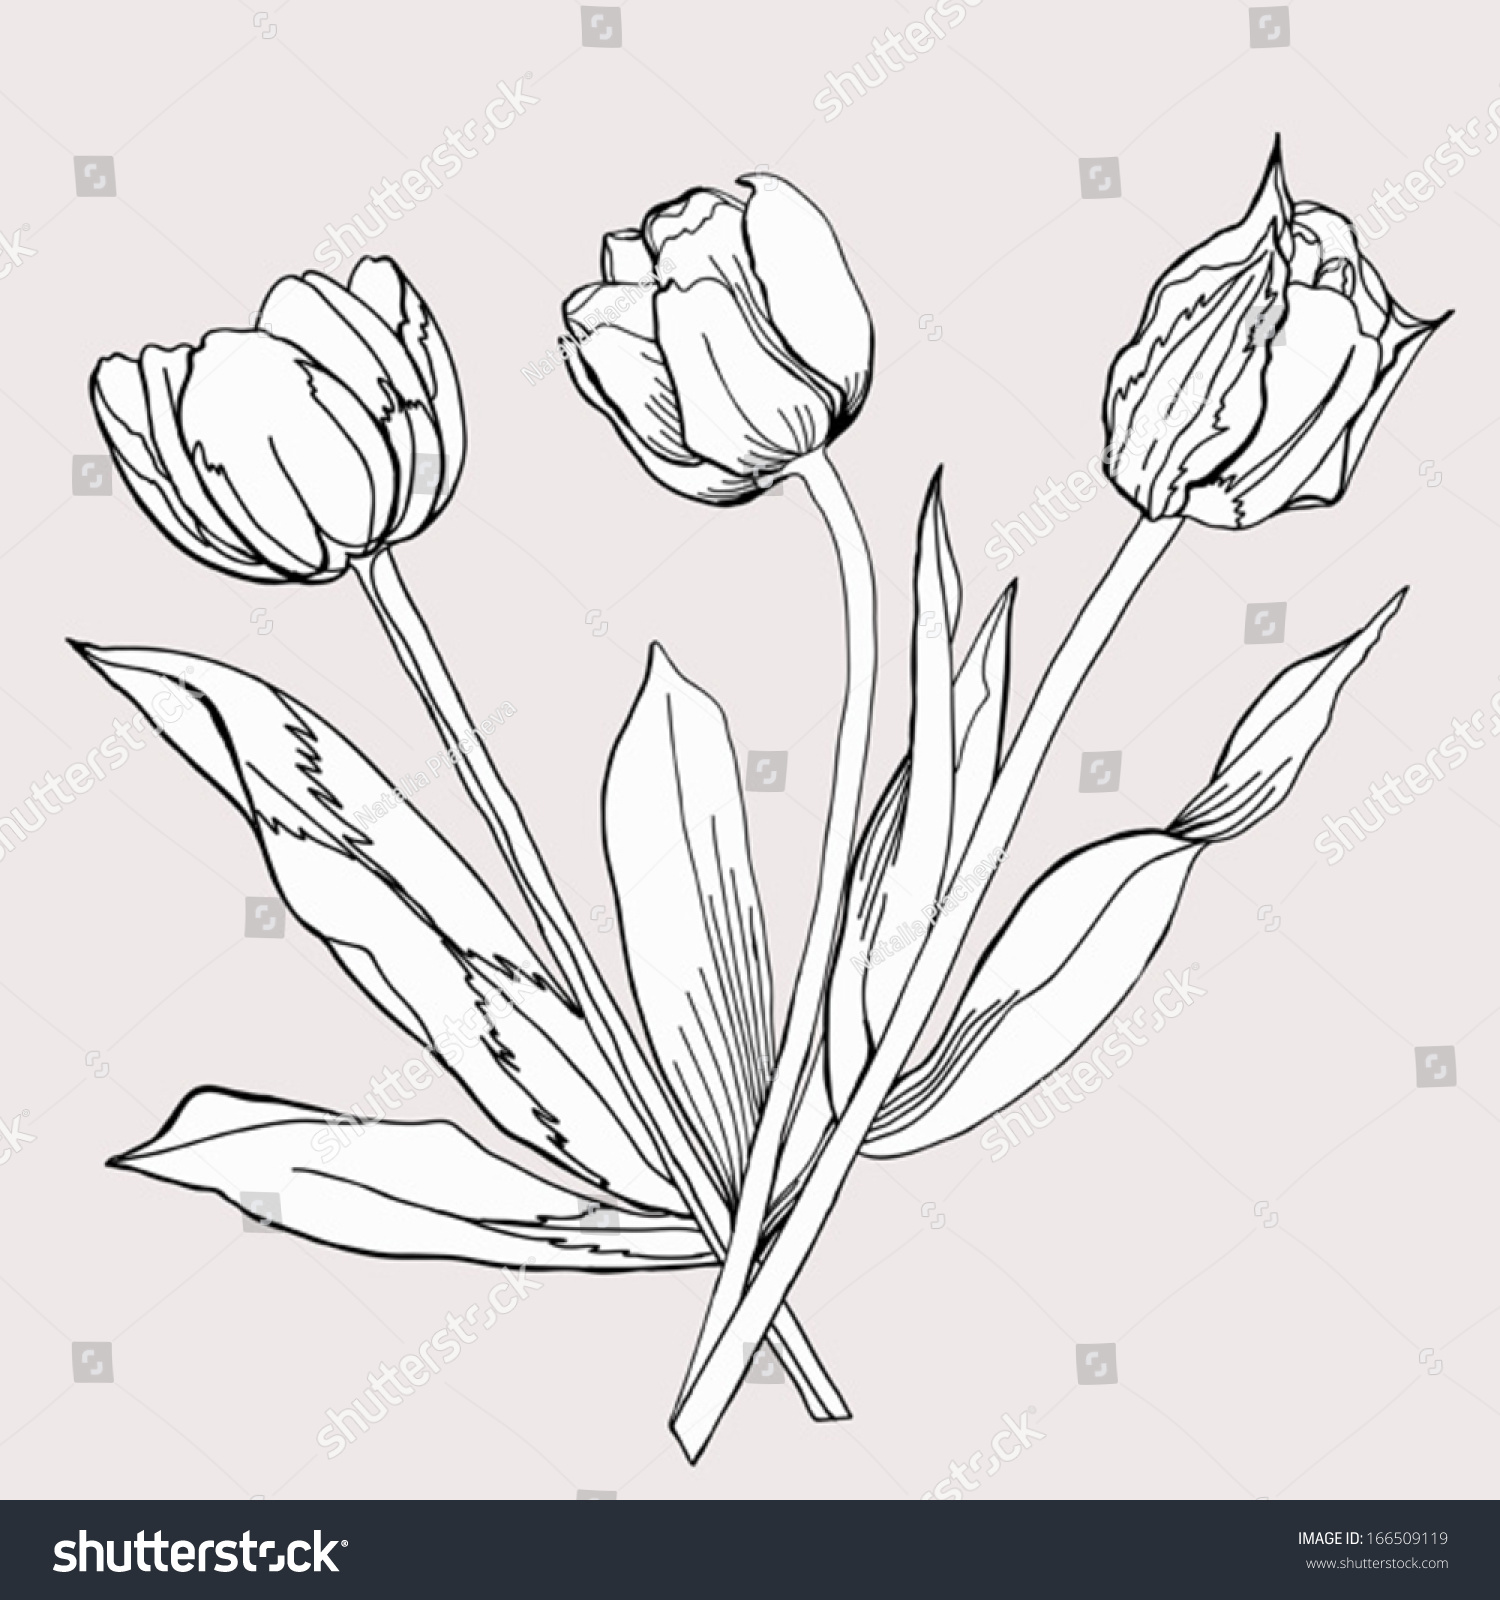 royalty free bouquet of tulip sketch black and 166509119 stock